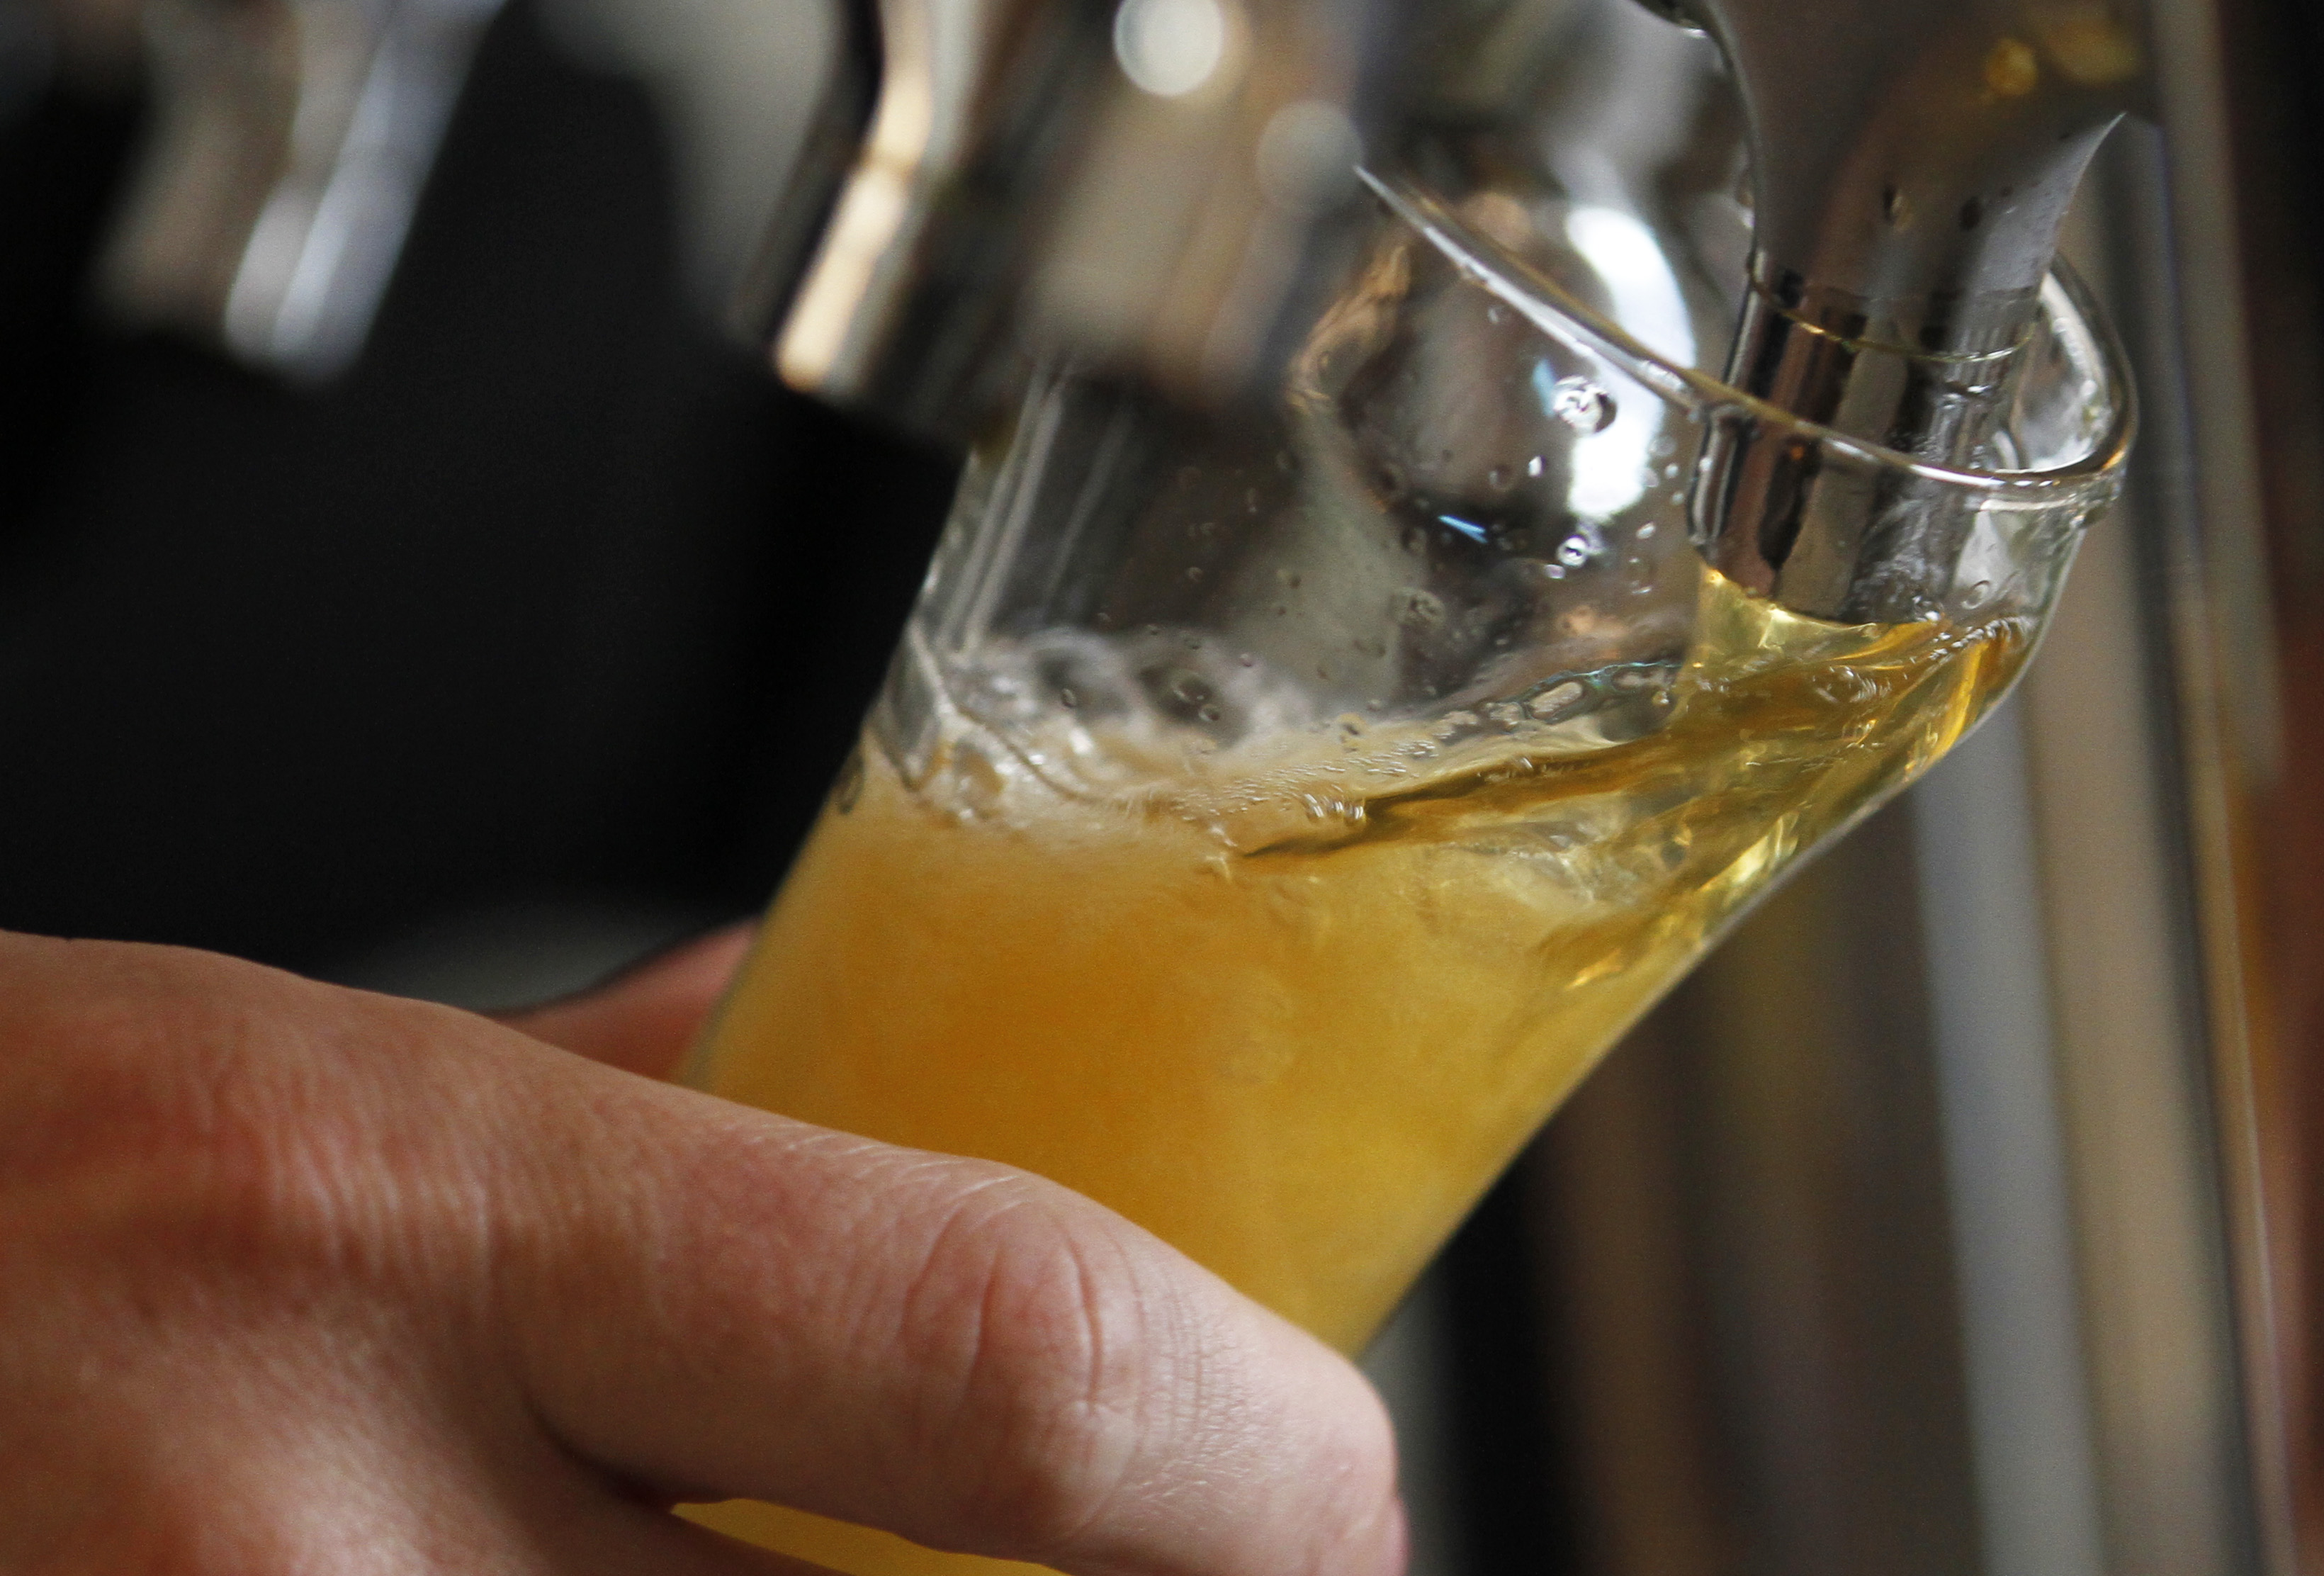 New law means new rules for D.C. brewers and distillers